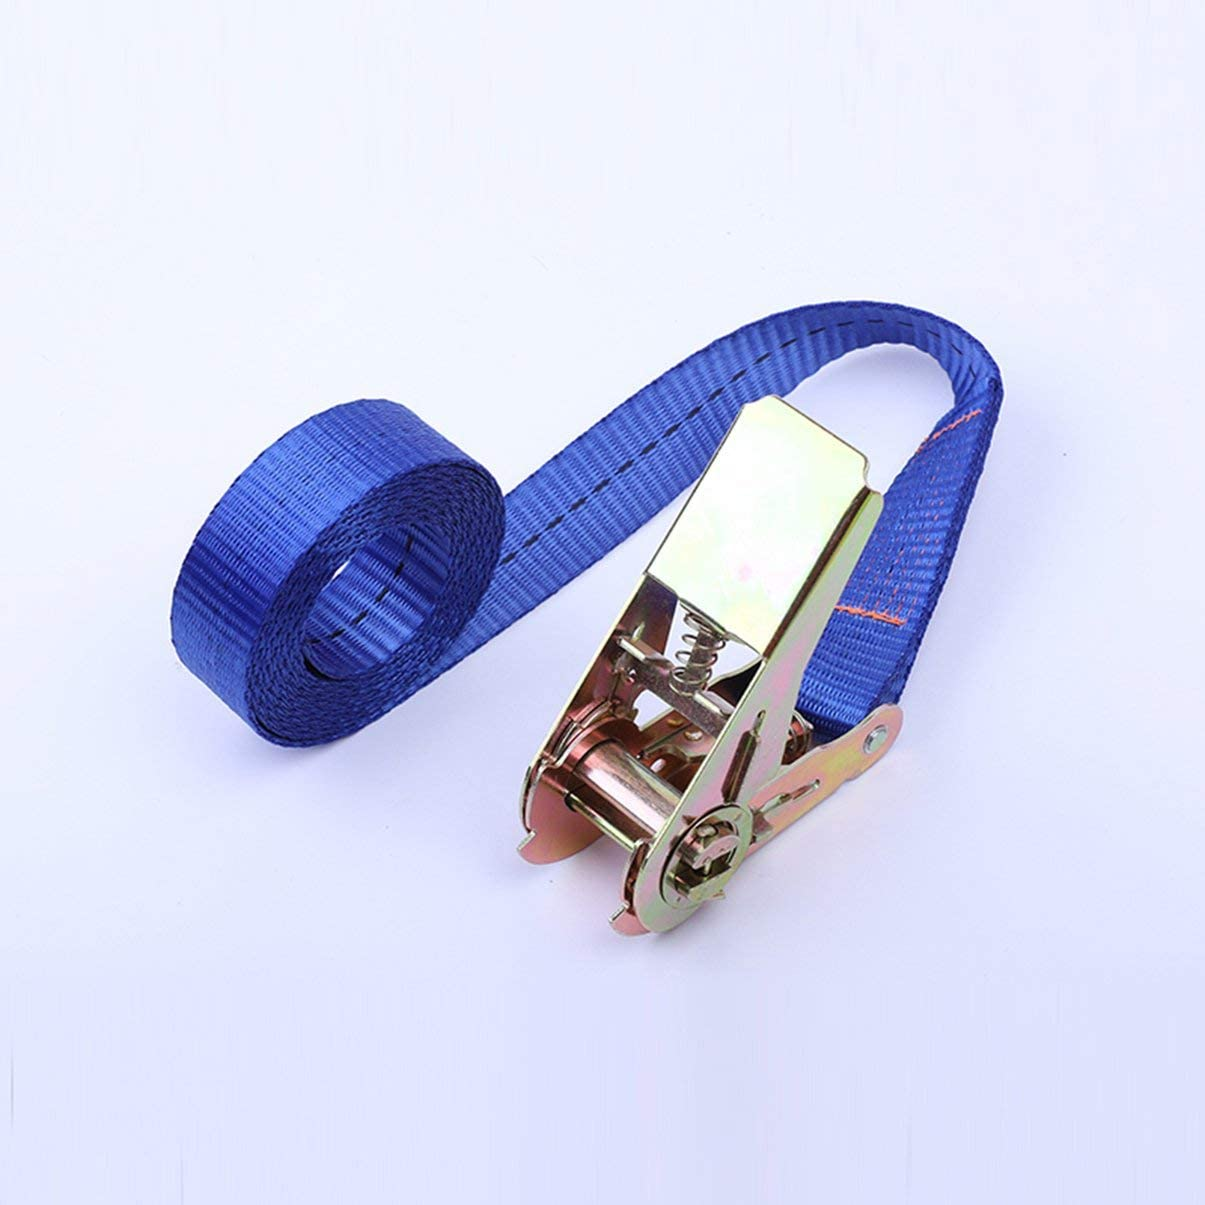 Buckle Tie-Down Belt cargo straps for Car motorcycle bike With Metal Buckle Tow Rope Strong Ratchet Belt for Luggage Bag